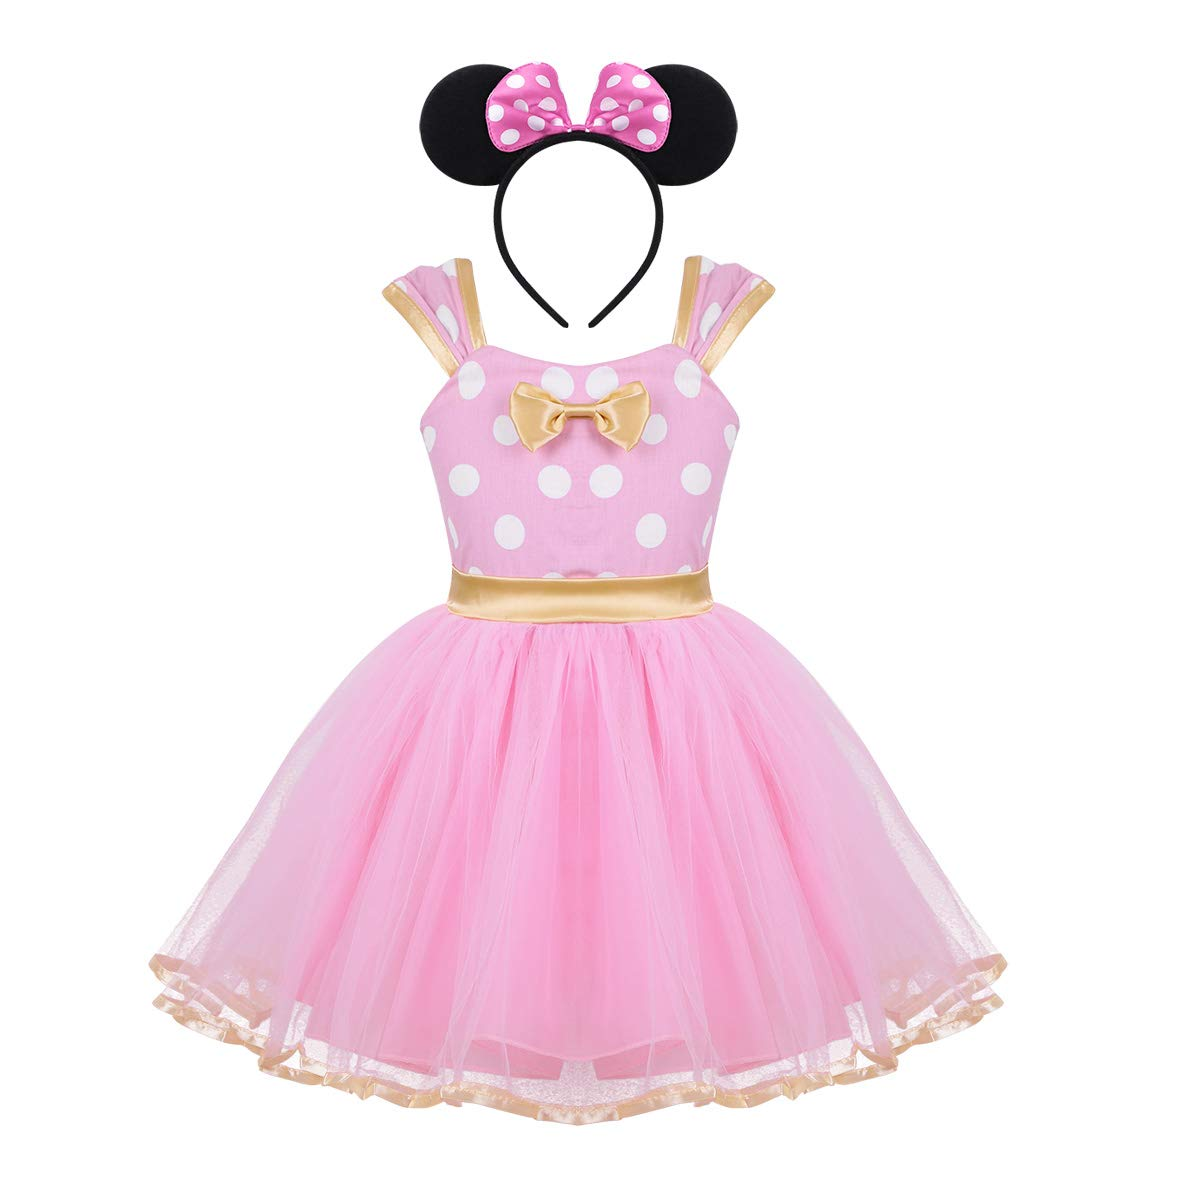 TiaoBug Infant Girls Polka Dots Princess Party Cartoon Mouse Costume Pageant Tutu Dress Pink (with Headband) 18-24 Months